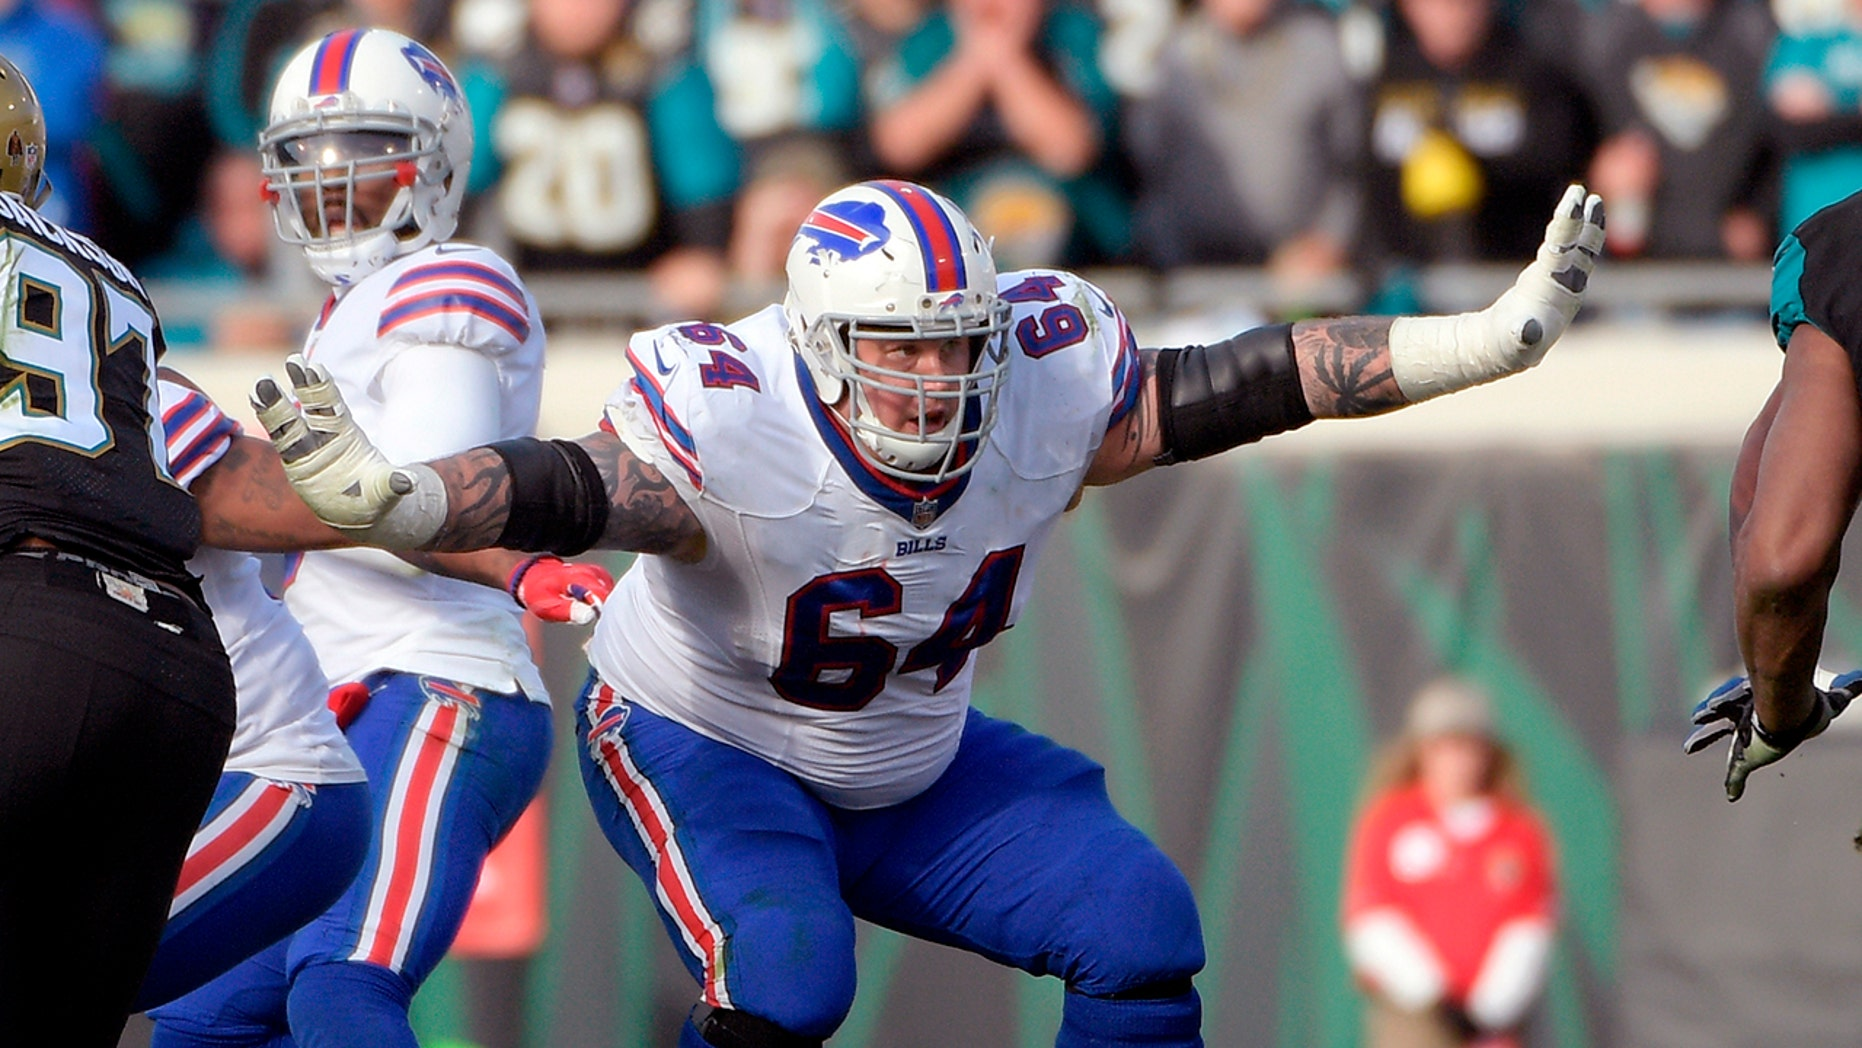 Buffalo Bills offensive guard Richie Incognito (64) sets up to block against the Jacksonville Jaguars during the second half of an NFL wild-card playoff football game in Jacksonville, Fla.